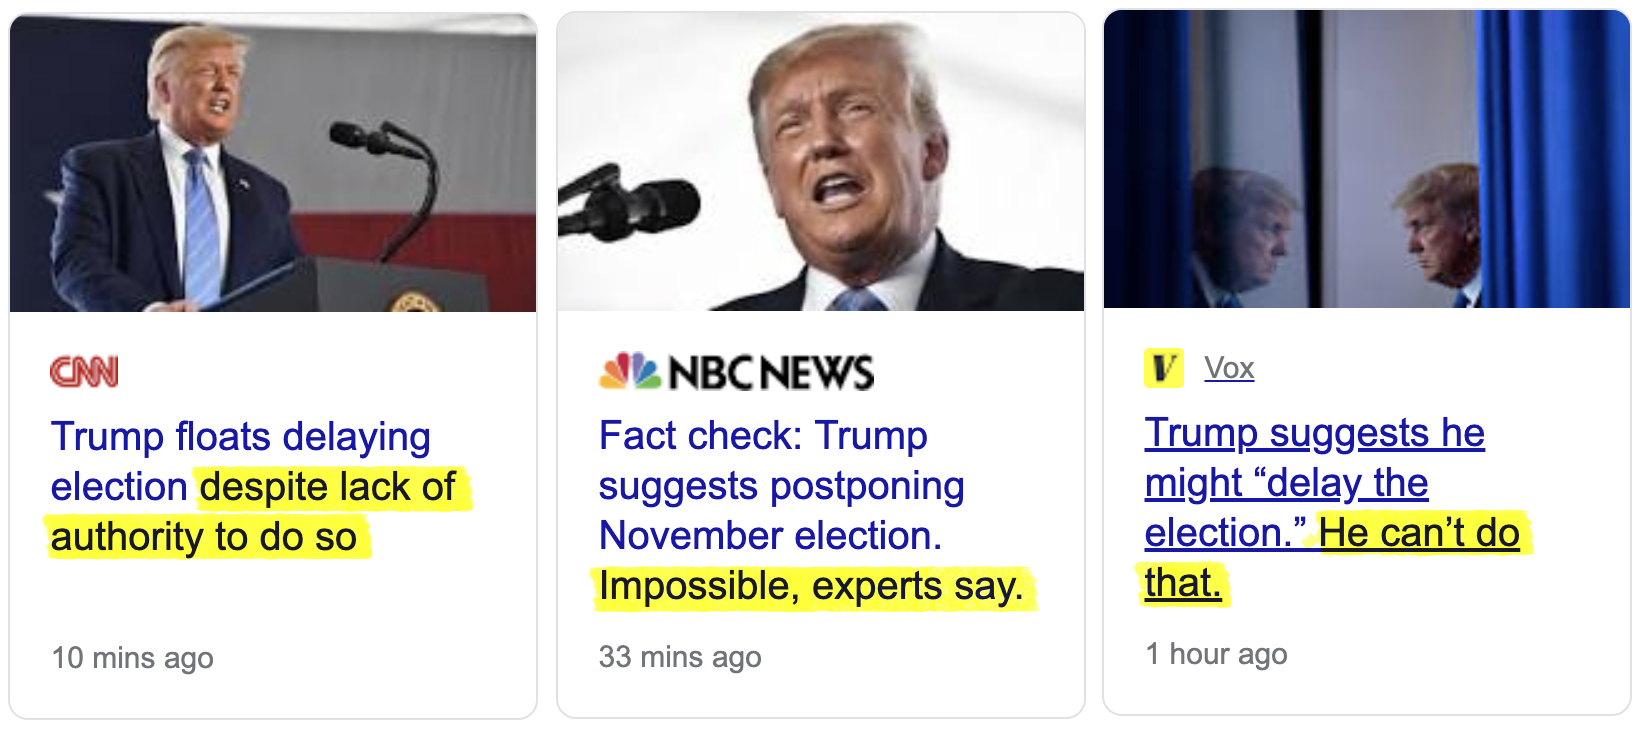 """A screenshot of three news headlines with the final clause of each headline highlighted in yellow. CNN reads """"Trump floats delaying election despite lack of authority to do so."""" NBC reads """"Fact check: Trump suggests postponing November election. Impossible, experts say."""" Vox reads """"Trump suggests he might """"delay the election."""" He can't do that."""""""